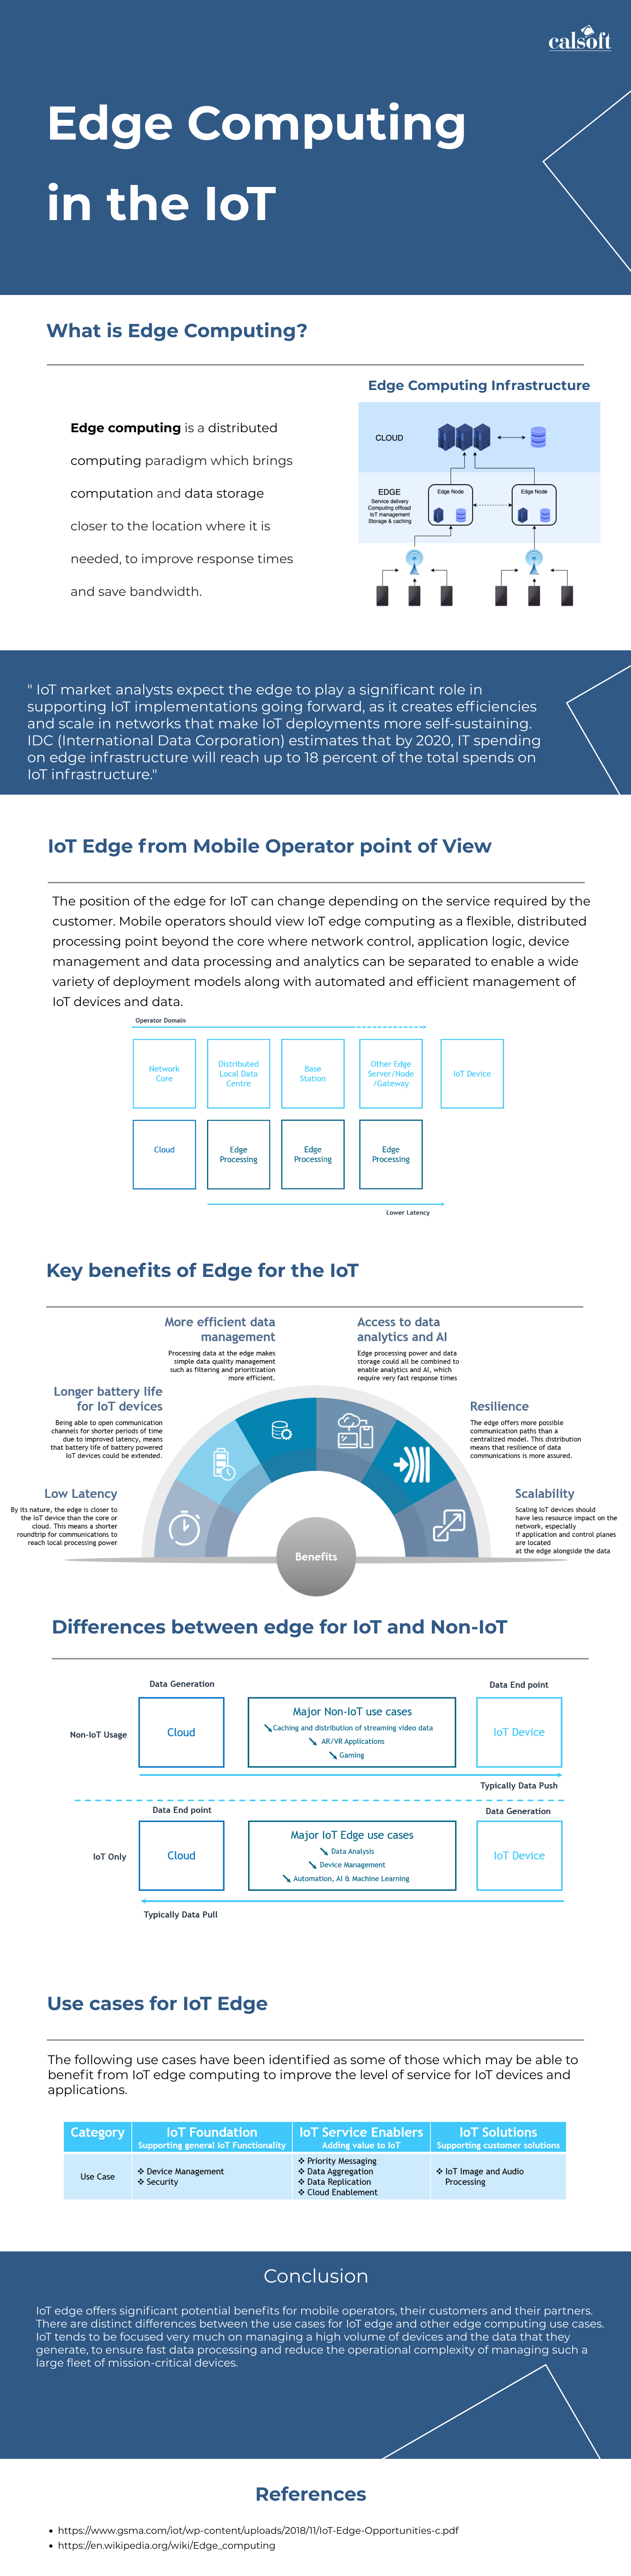 [Infoblog] Edge Computing in the IoT